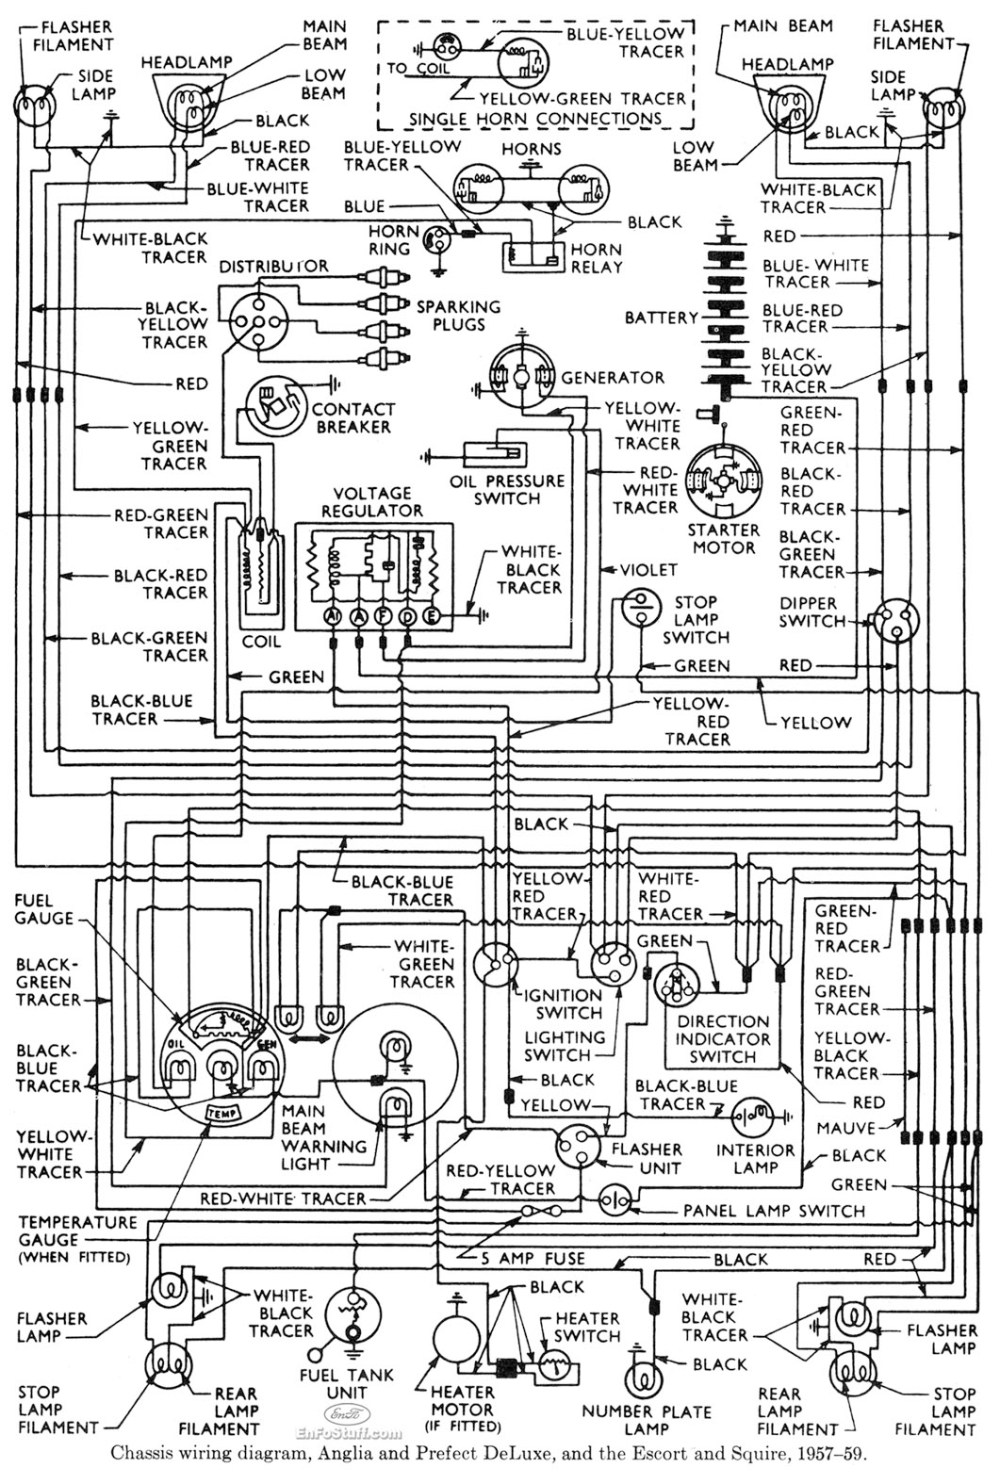 medium resolution of ford anglia prefect escort squire 1957 59 wiring diagram 1955 electrical wiring schematic 1988 columbia par car